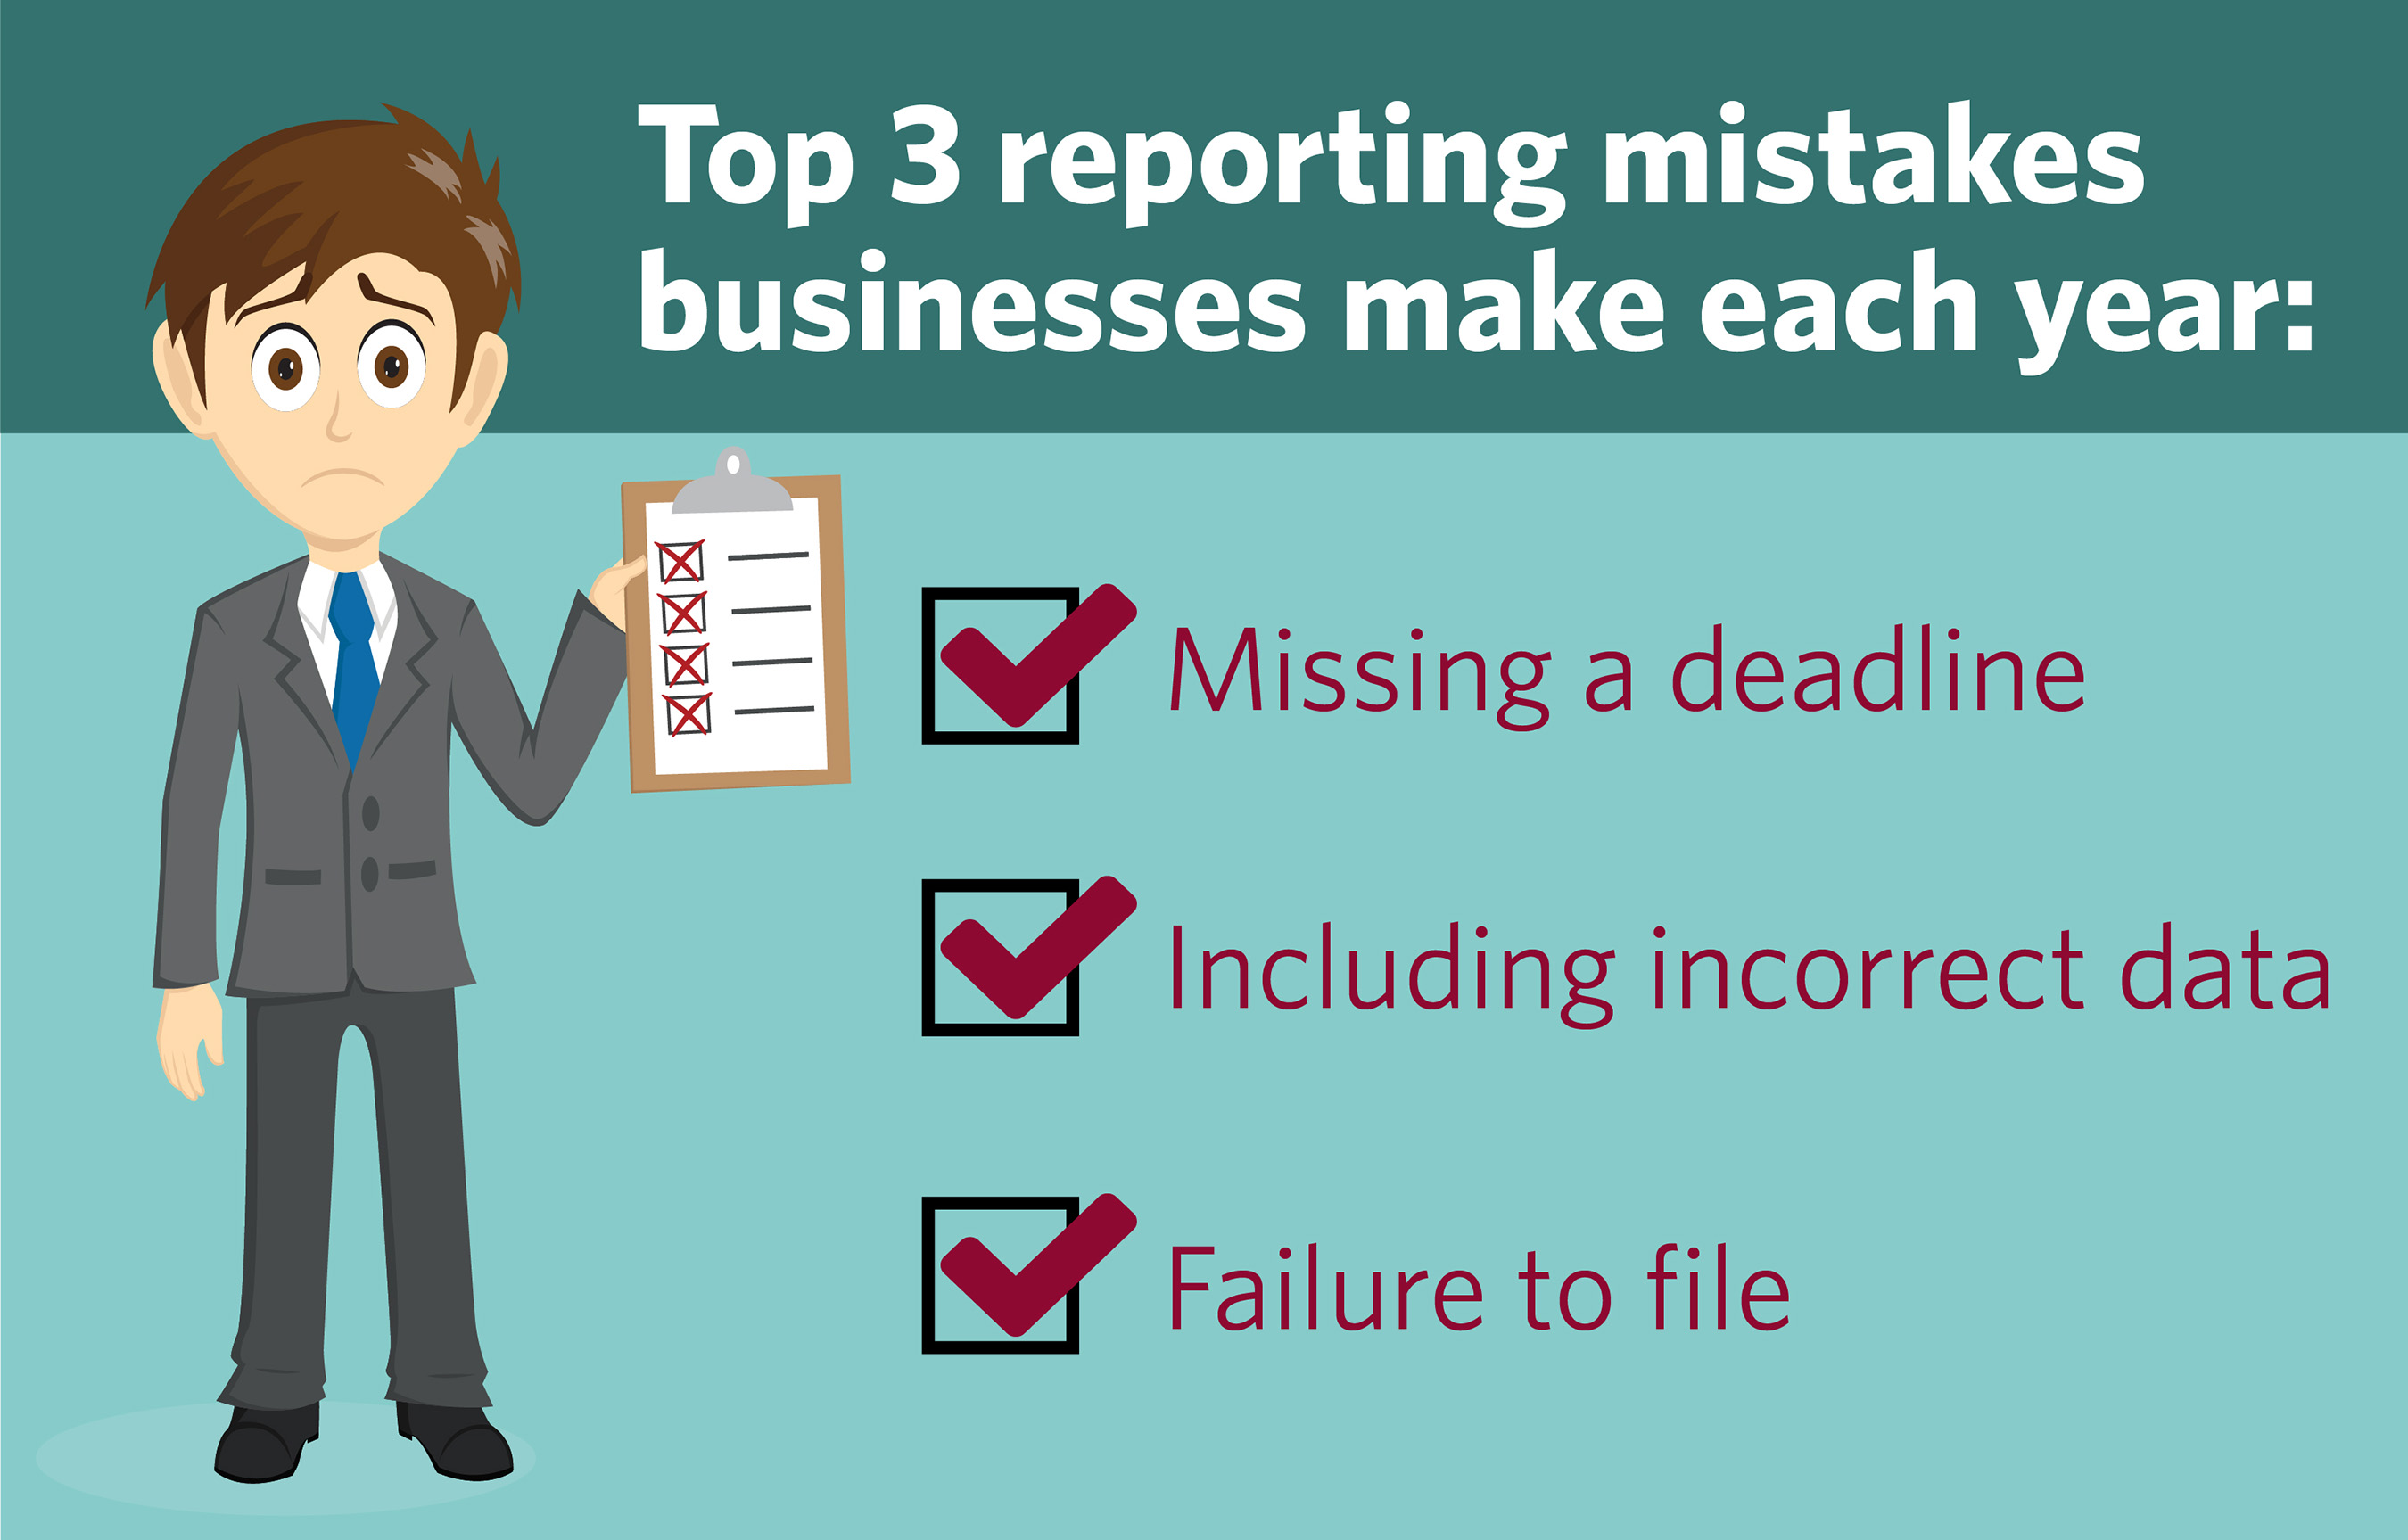 A lot of reporting mistakes are easily avoidable, Greatland Corporation can help your business check all the boxes to ensure you file on time and file correctly.